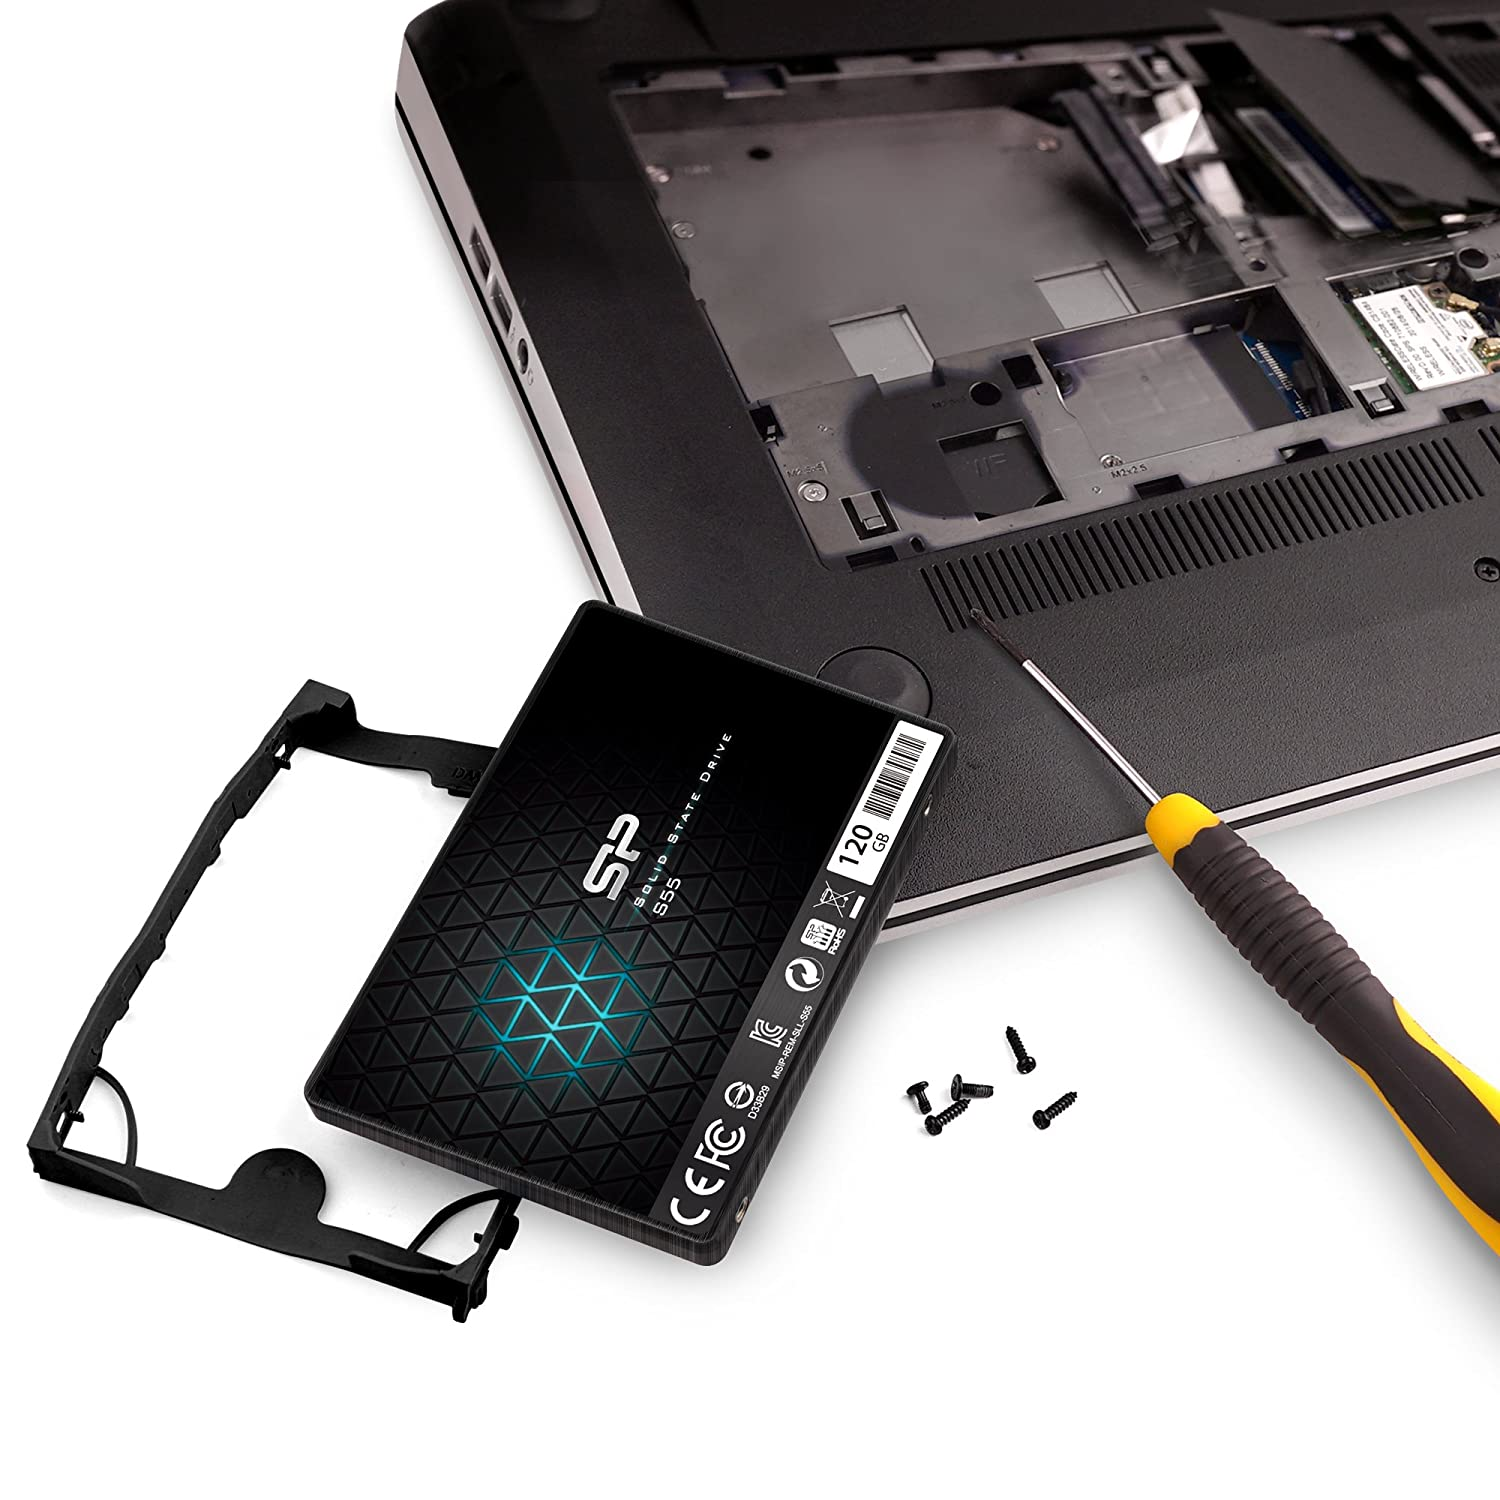 Silicon Power S55 120GB 2.5-Inch 7mm SATA III Internal Solid State Drive SP120GBSS3S55S25